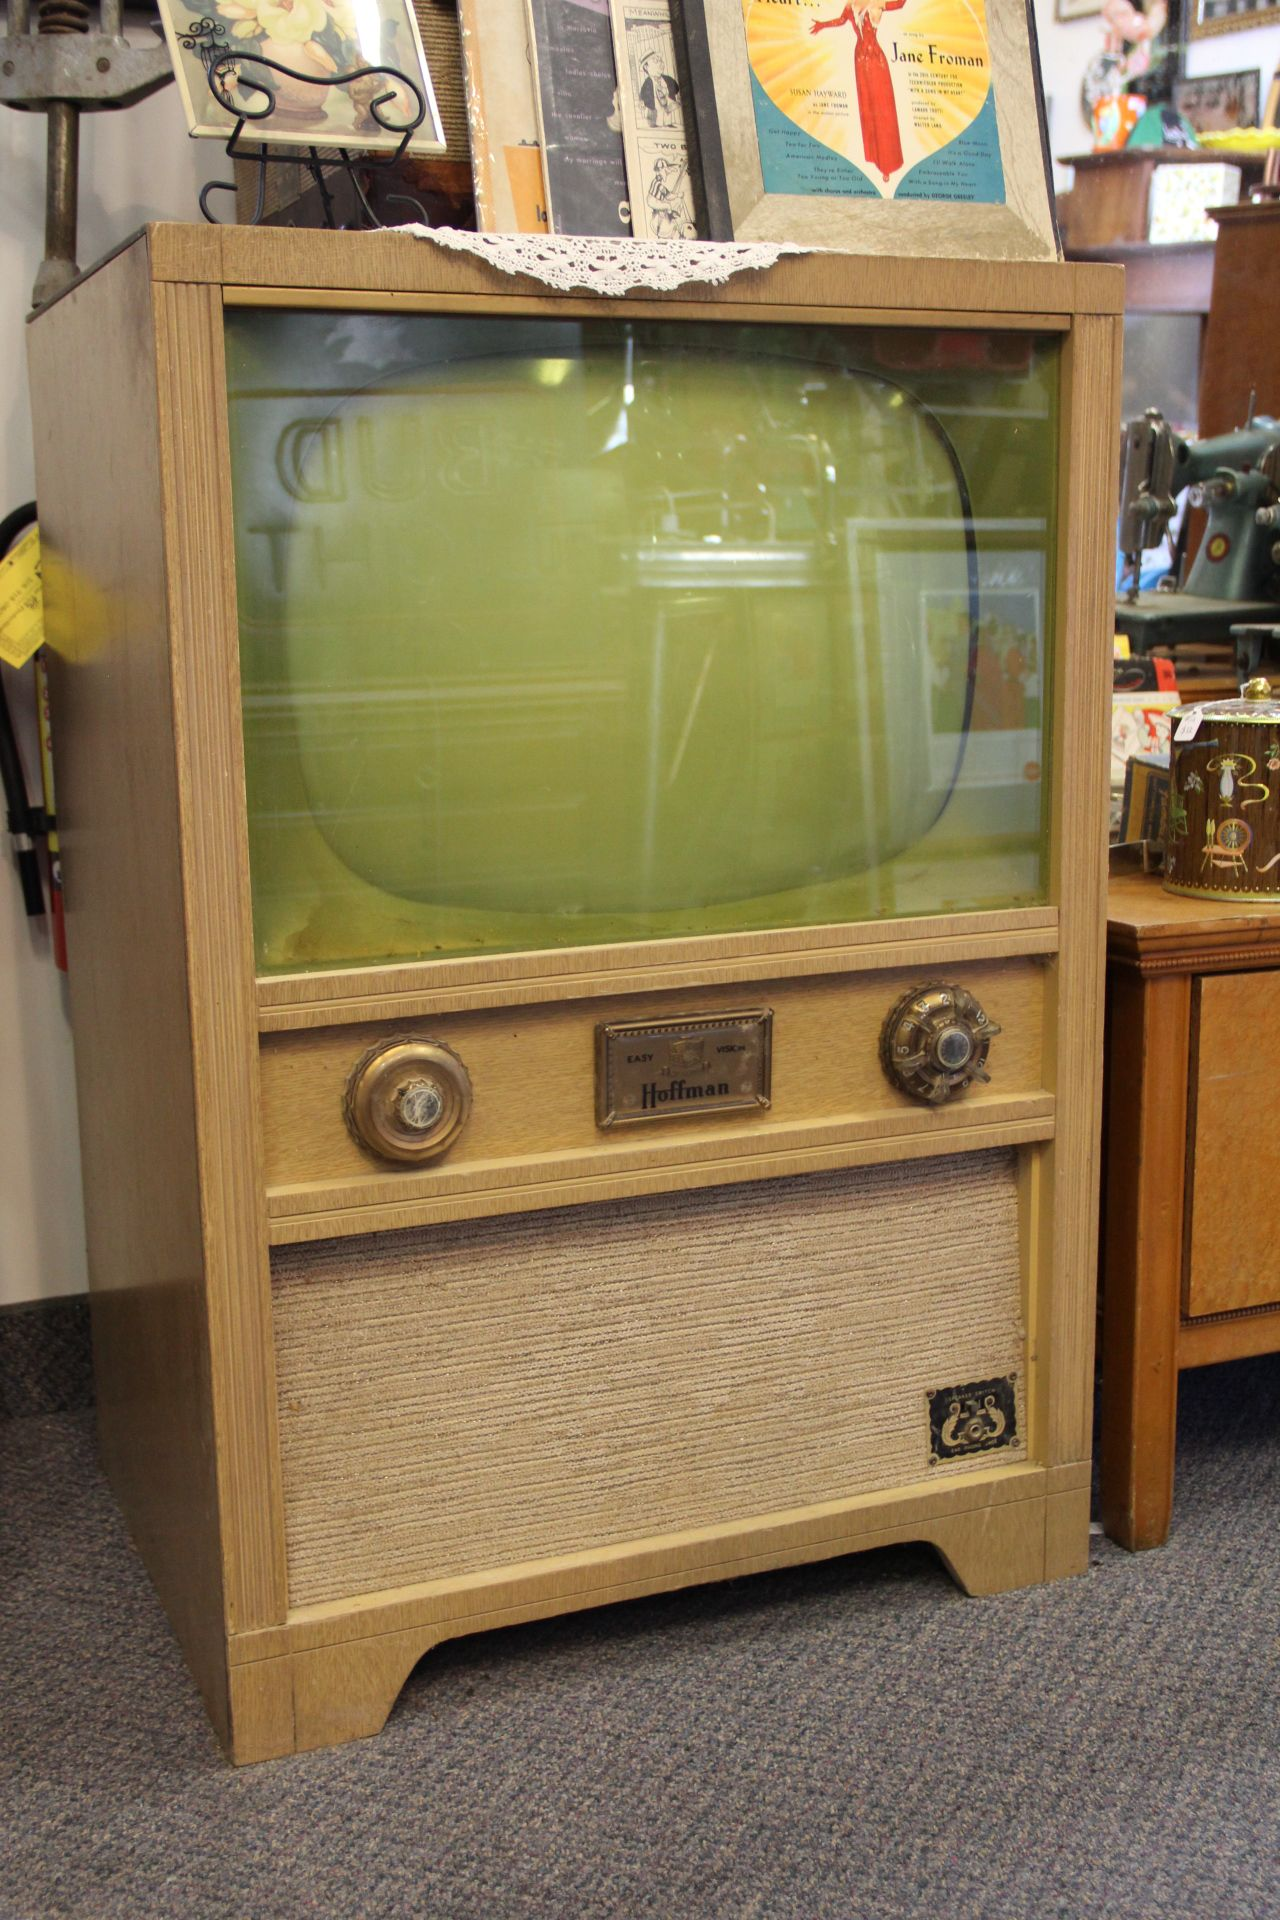 Old Console Tv ~ Vintage s hoffman console television http